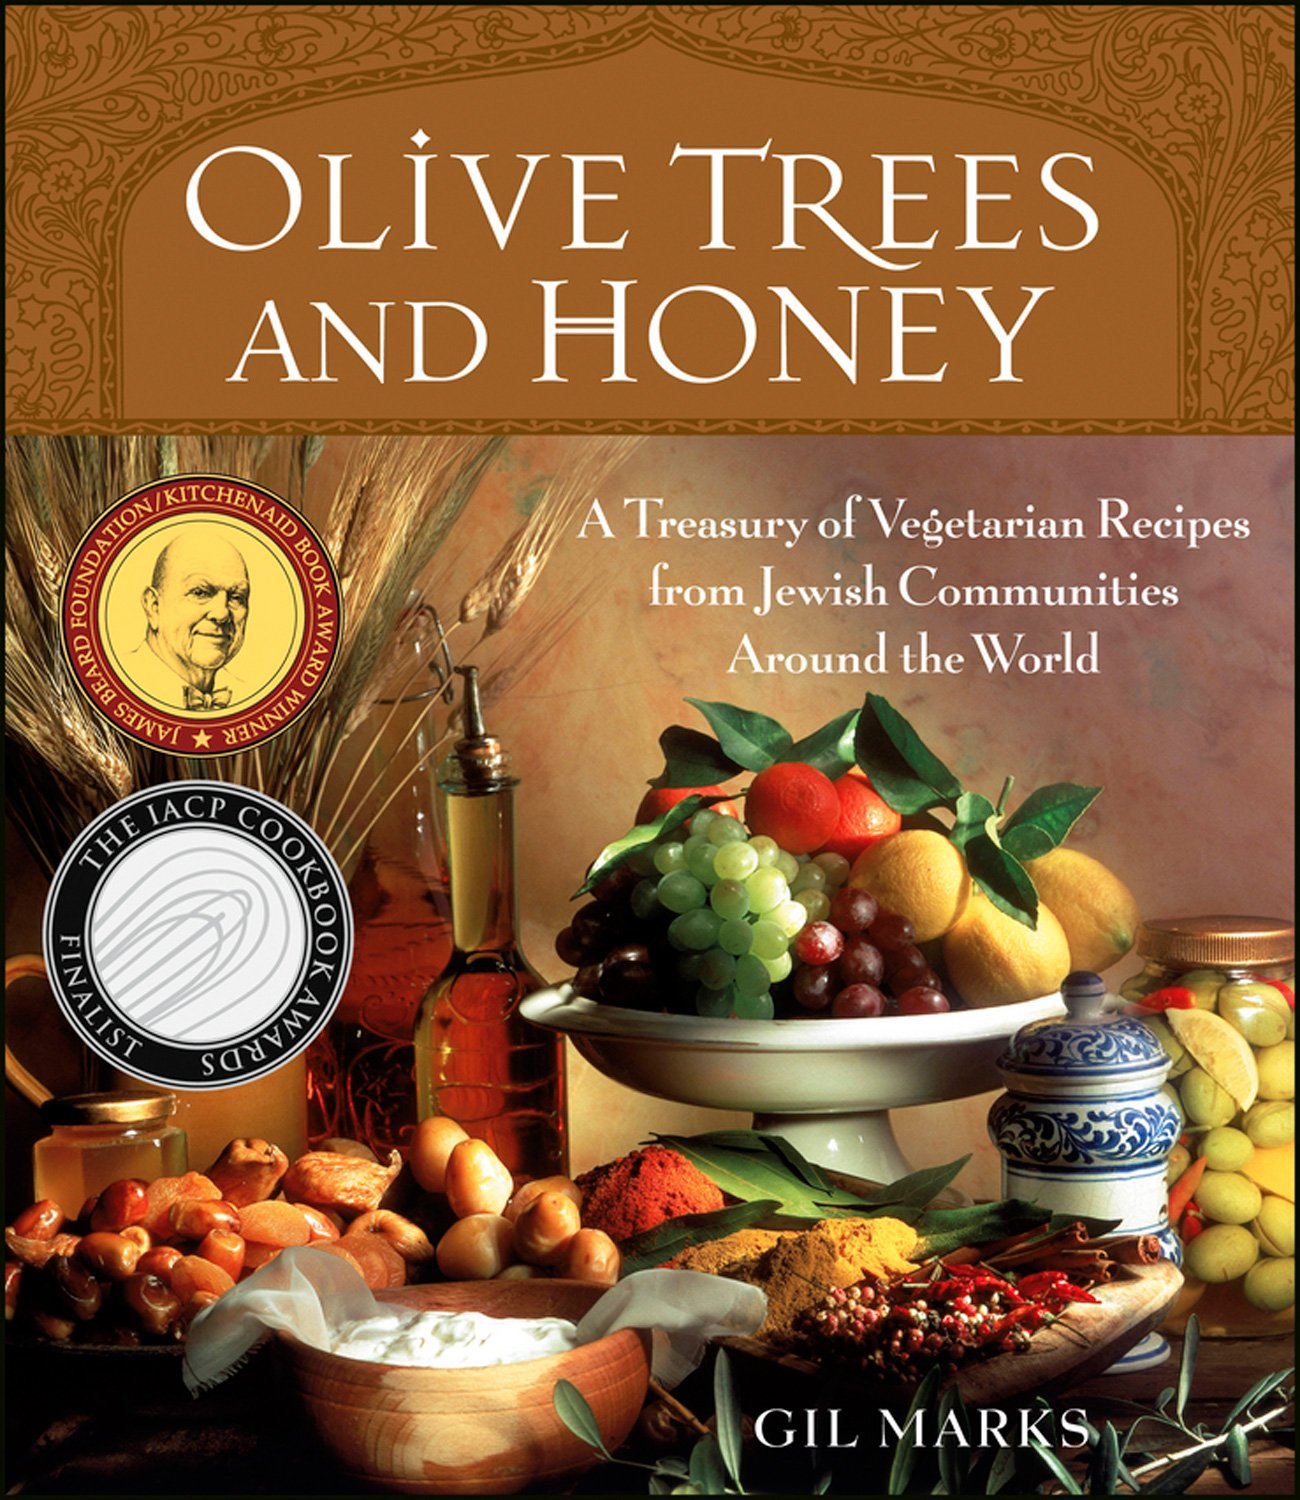 Olive trees and honey a treasury of vegetarian recipes from olive trees and honey a treasury of vegetarian recipes from jewish communities around the world gil marks 9780764544132 amazon books forumfinder